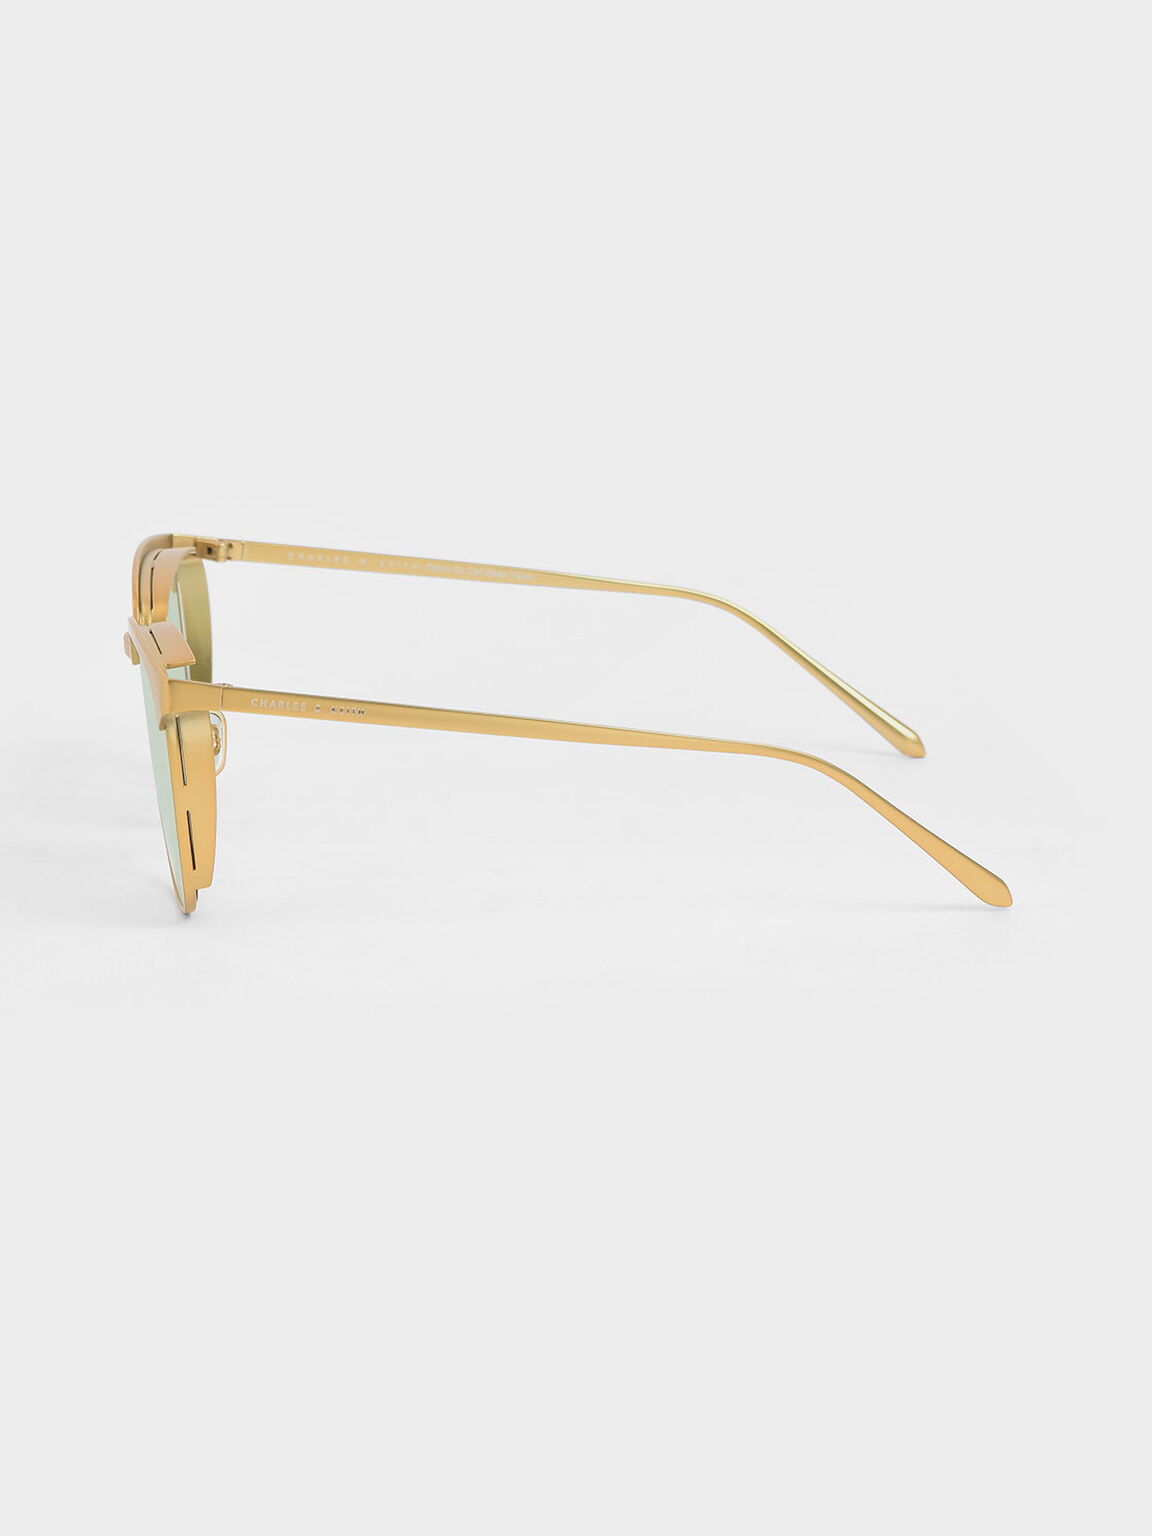 Tinted Rectangular Sunglasses, Green, hi-res